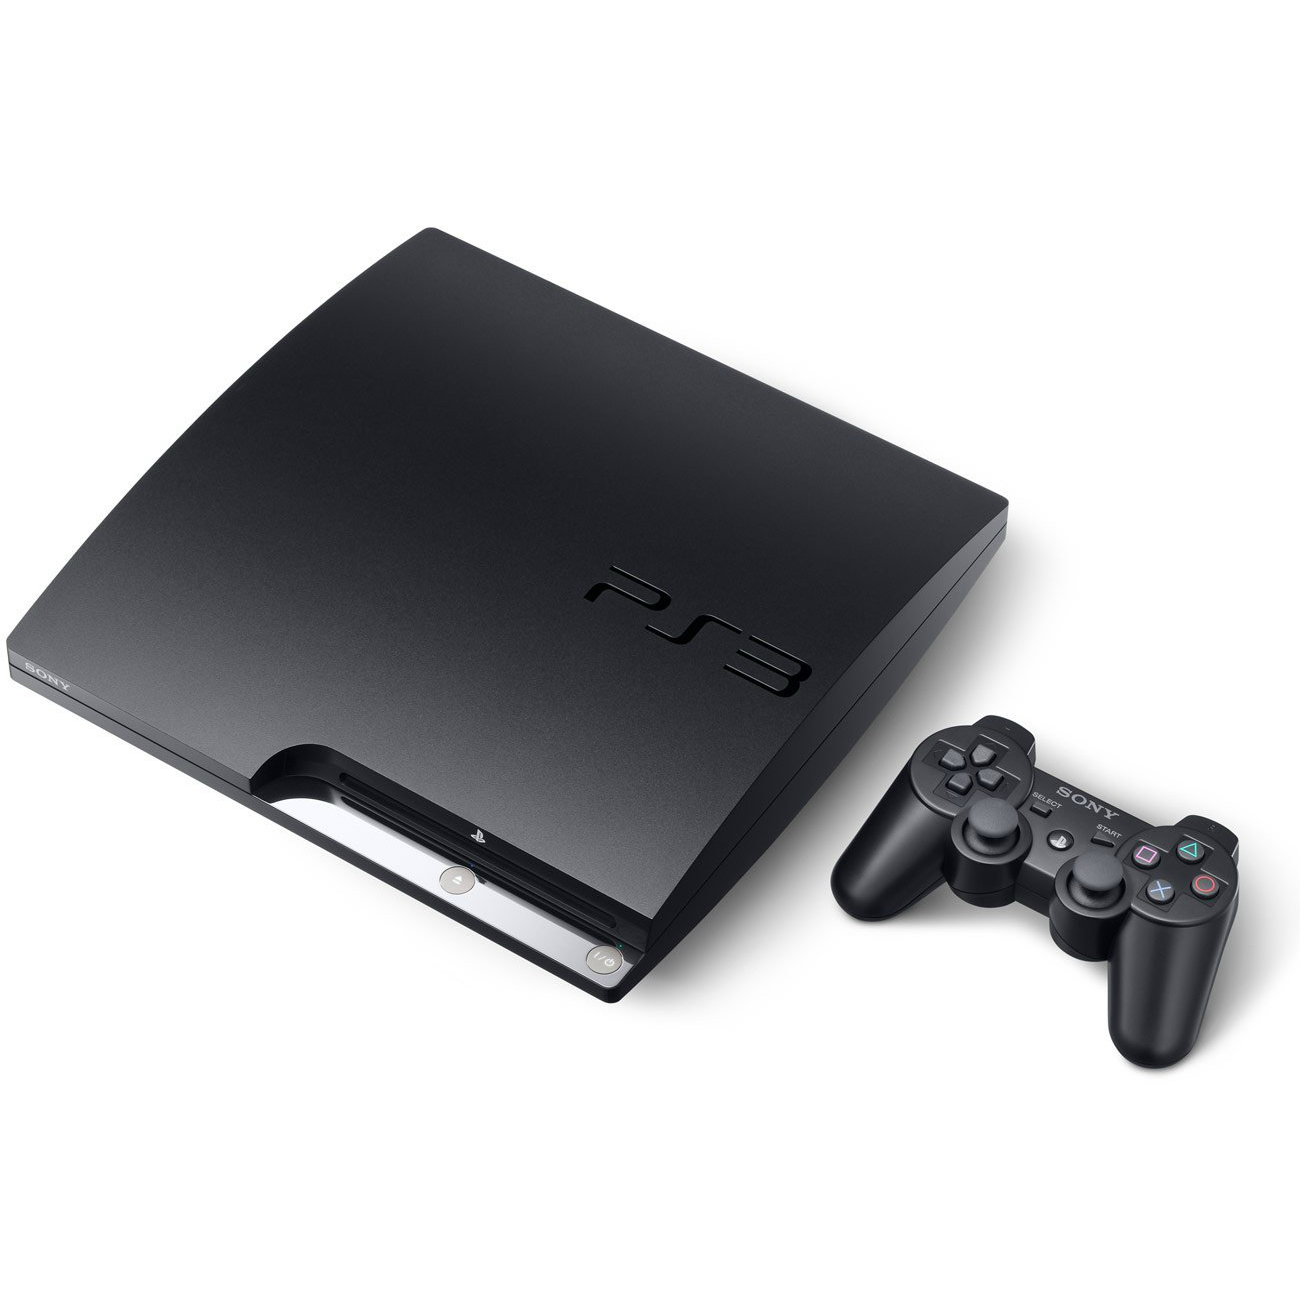 Sony playstation 3 ps3 console for sale in jamaica - Playstation one console for sale ...